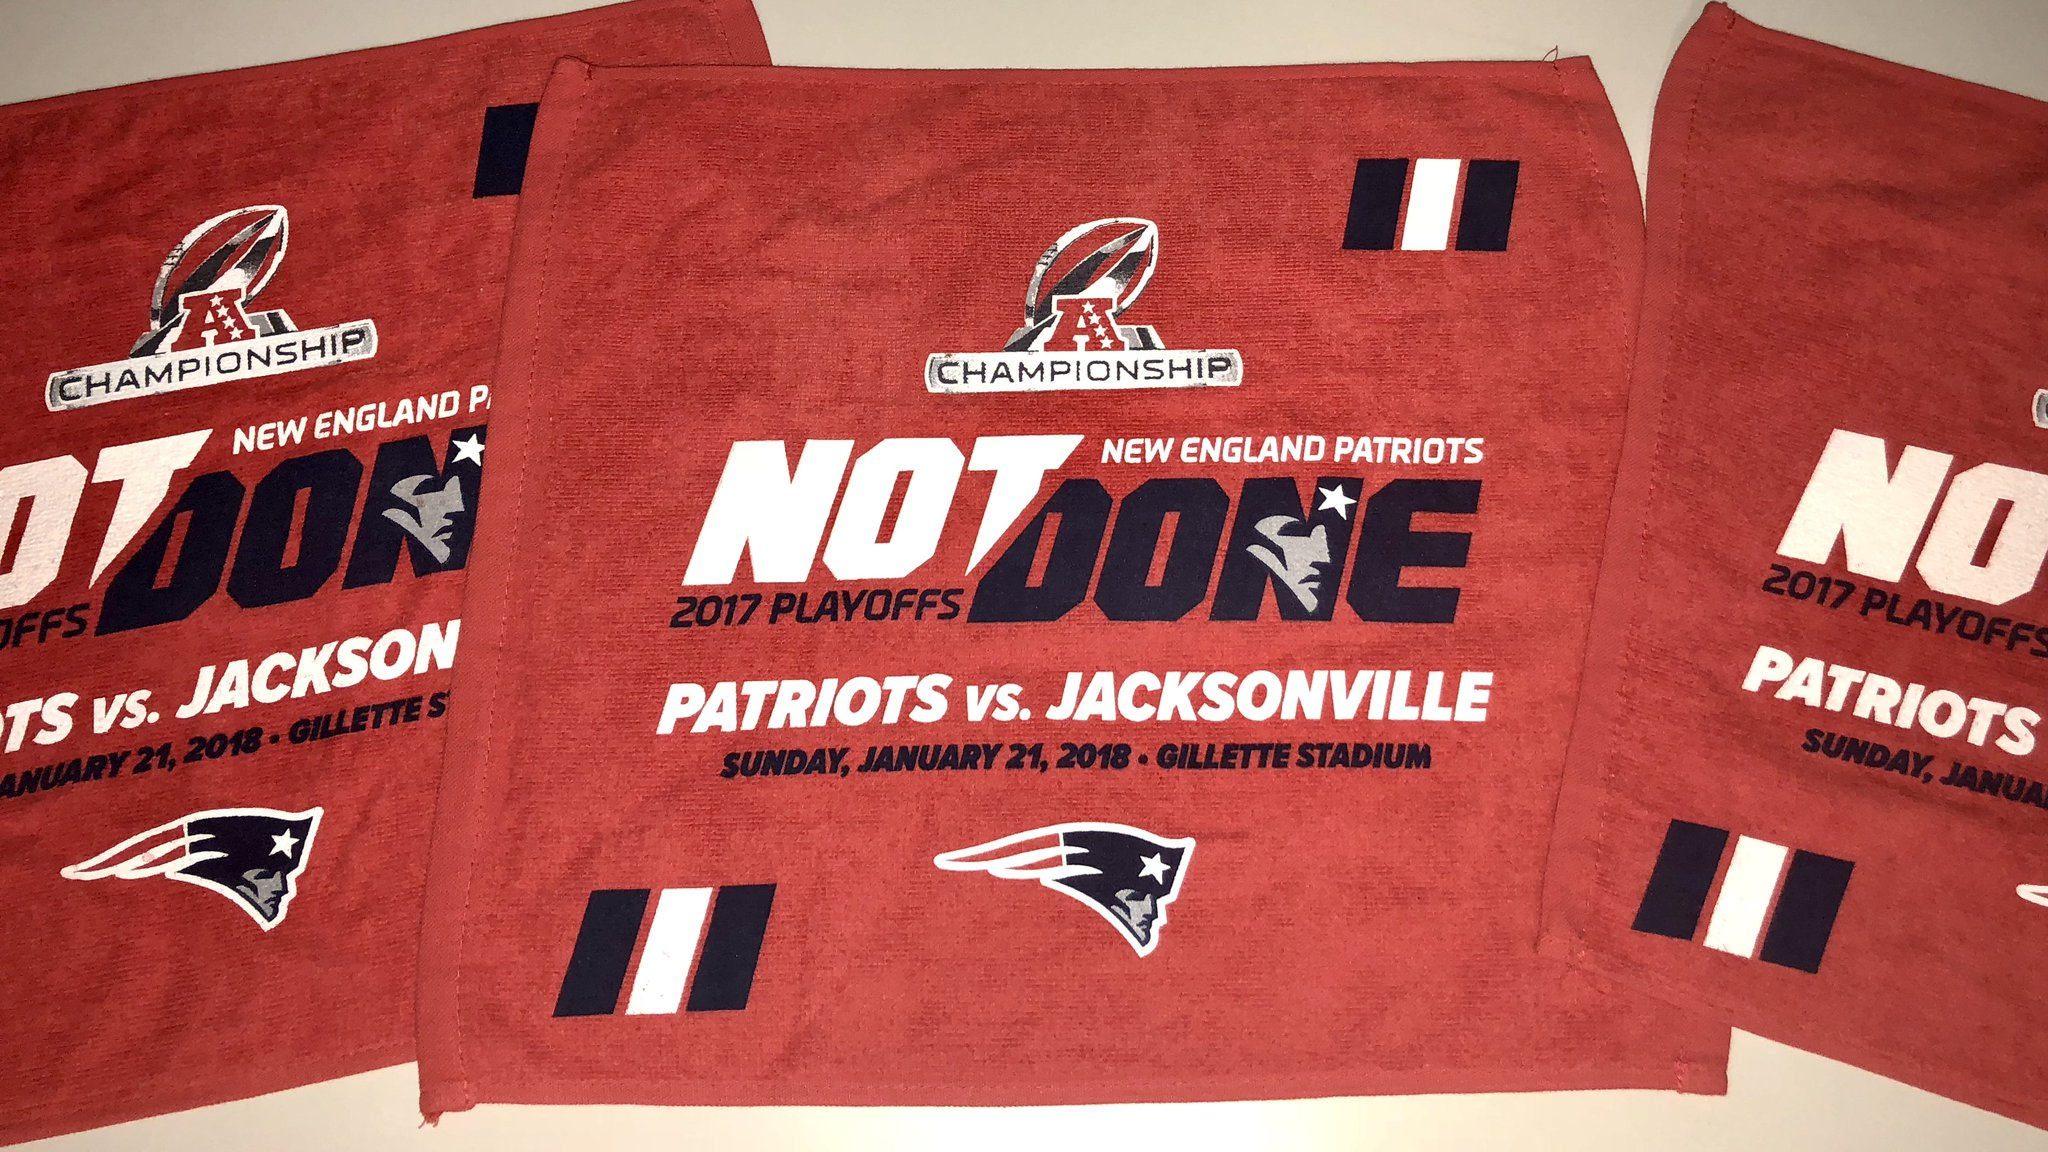 Today's in-stadium giveaway: red glov... rally towels. #NotDone https://t.co/4bH9PQYgd8